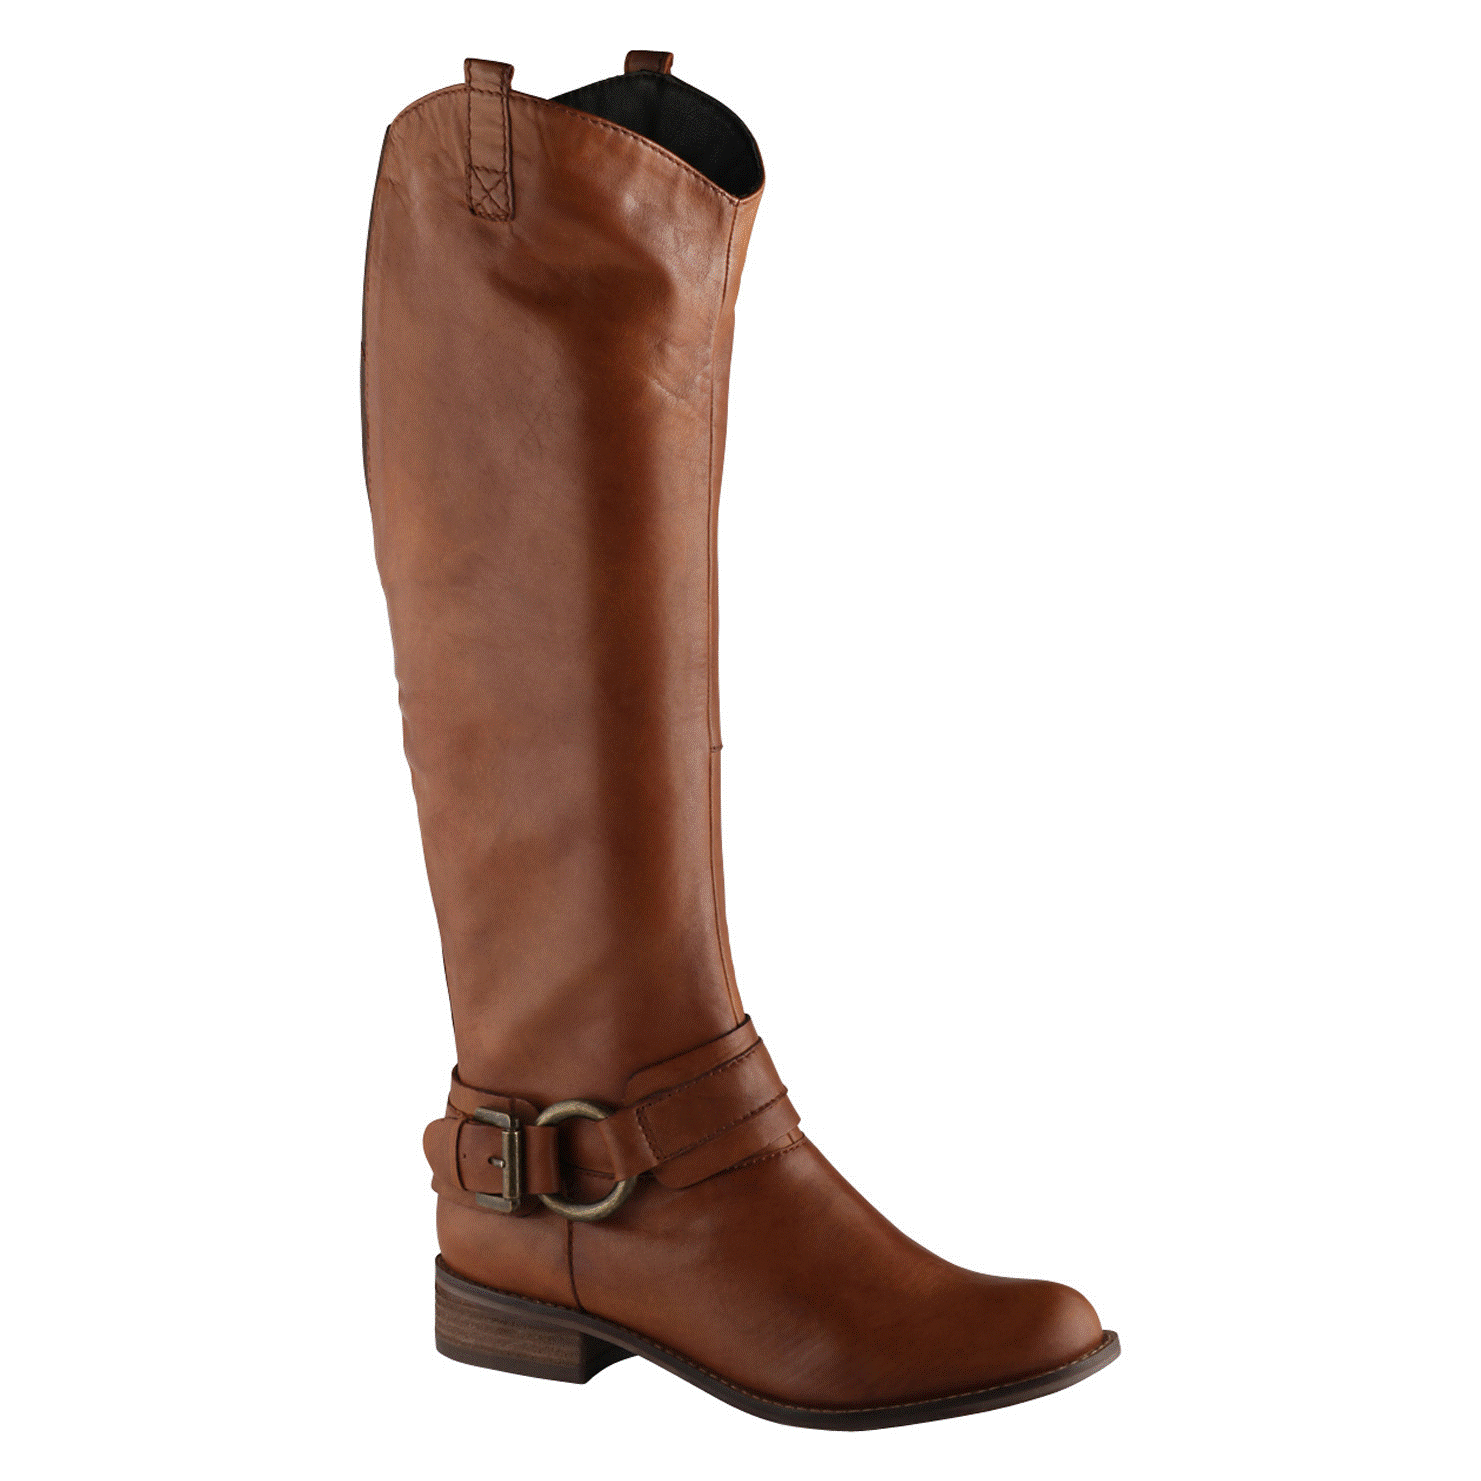 Knee-High-Boot-Fashion-Month-Aldo-Boots-Part-One-Flat-Boots-Rain-Boots-1 Knee High Boot Fashion Month - Aldo Boots Part One Flat Boots & Rain Boots